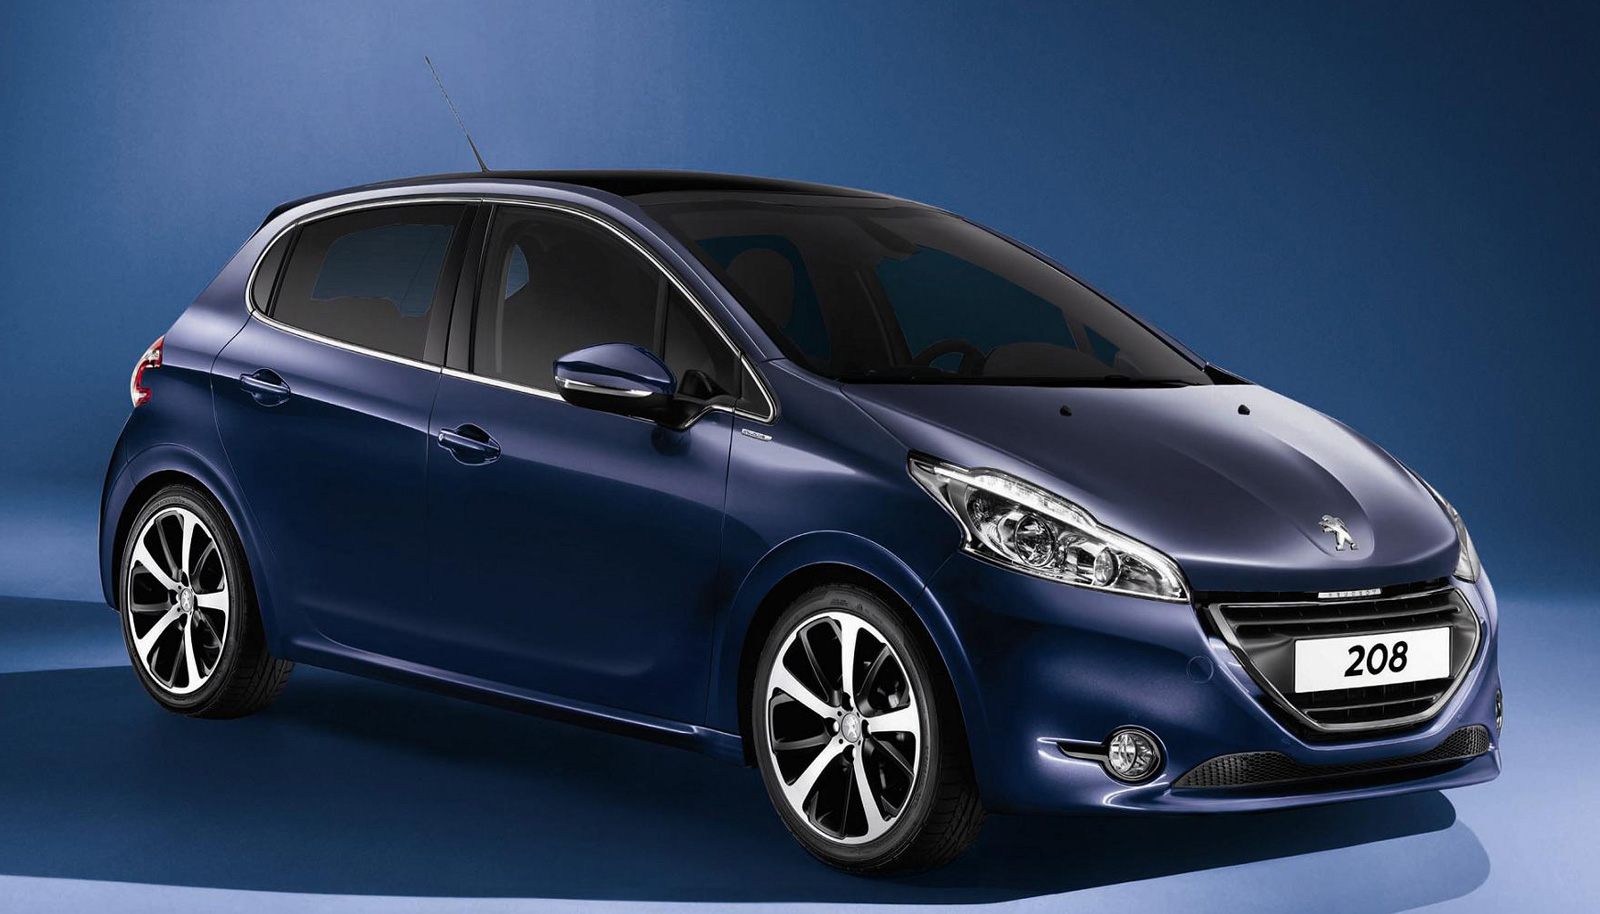 new peugeot 208 all set for mid april malaysian launch. Black Bedroom Furniture Sets. Home Design Ideas